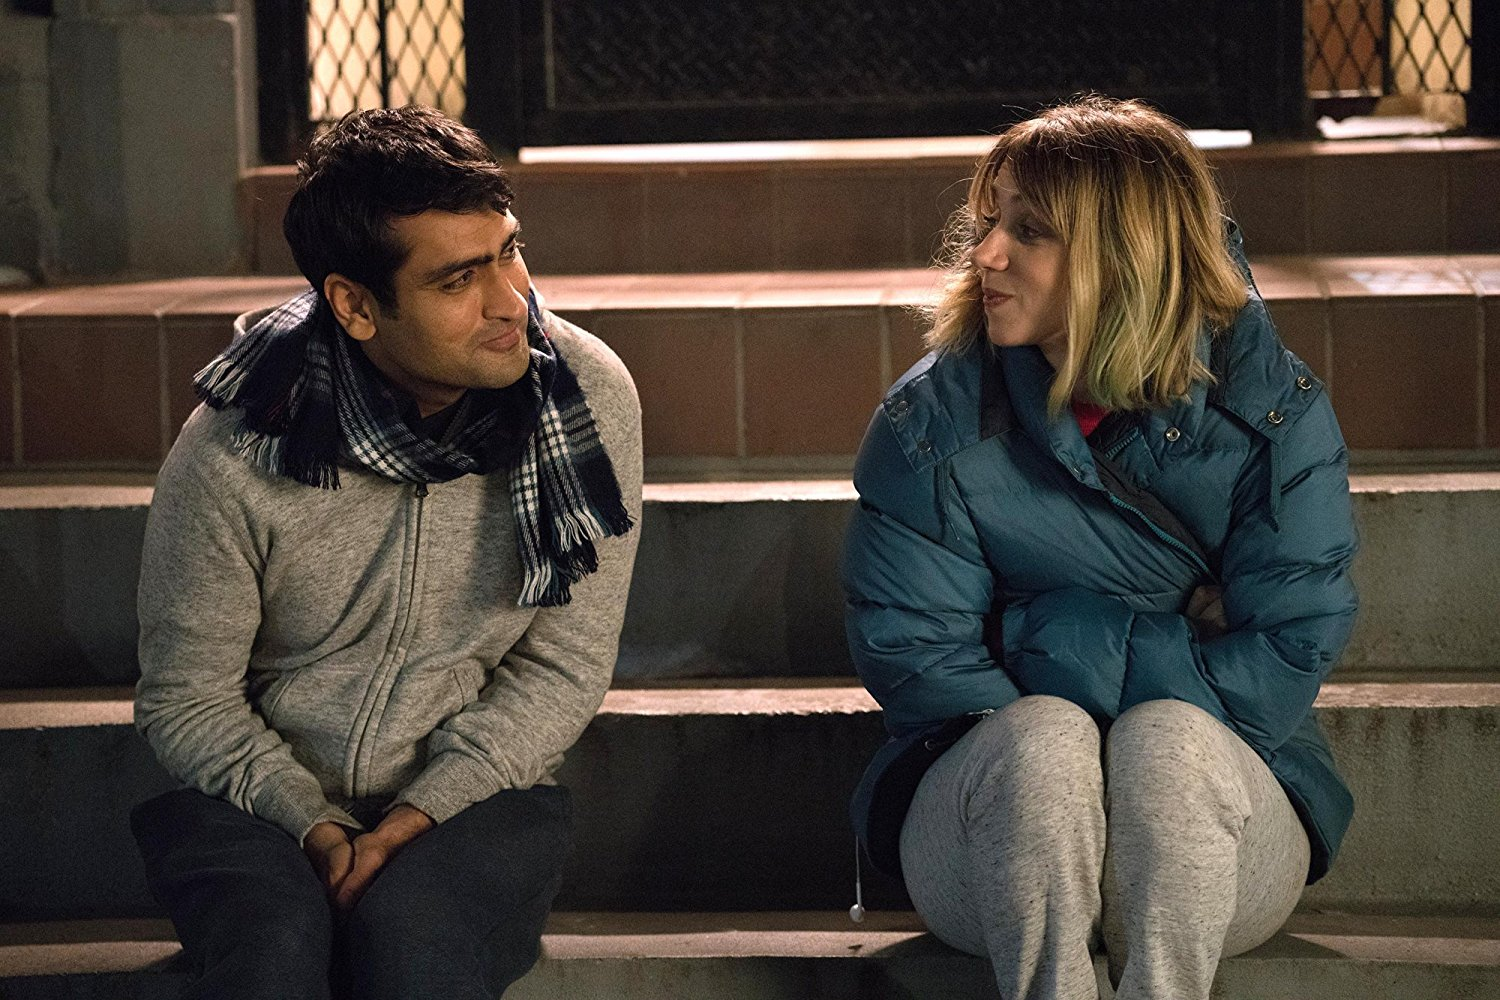 Kumail Nanjiani and Zoe Kazan in THE BIG SICK (2017)